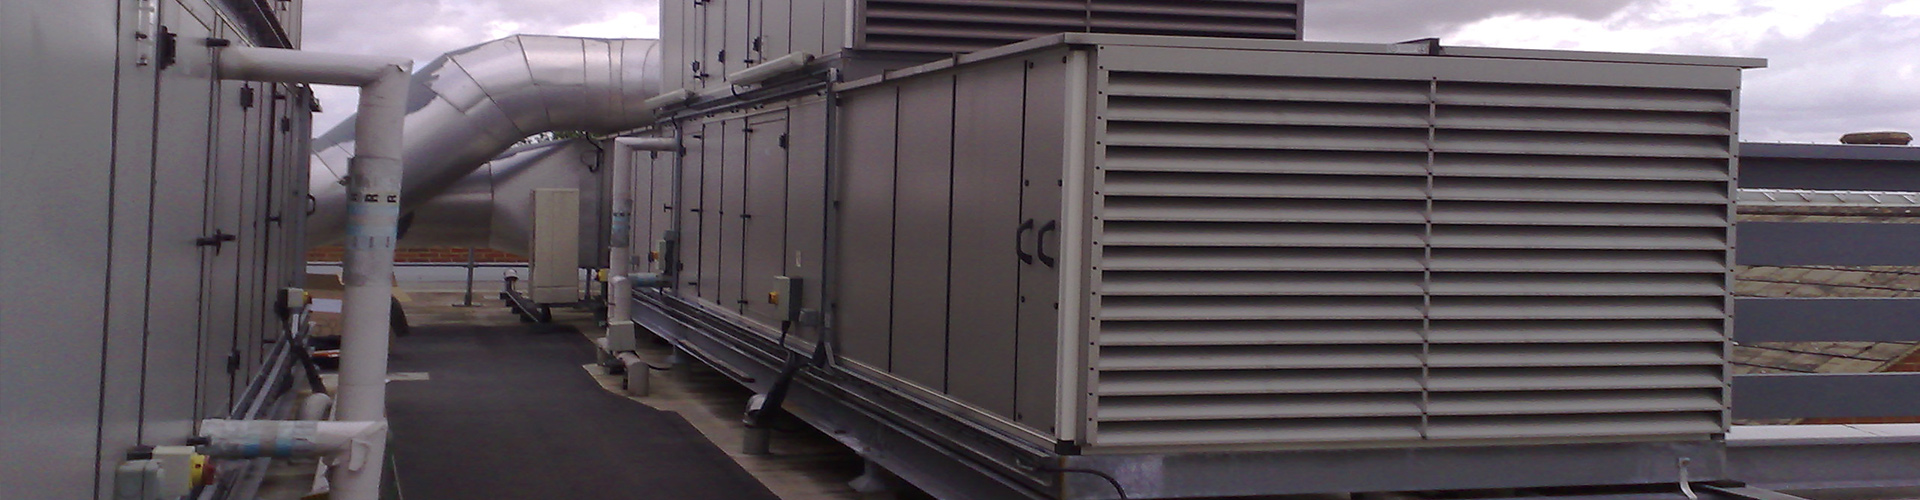 packaged-air-conditioning